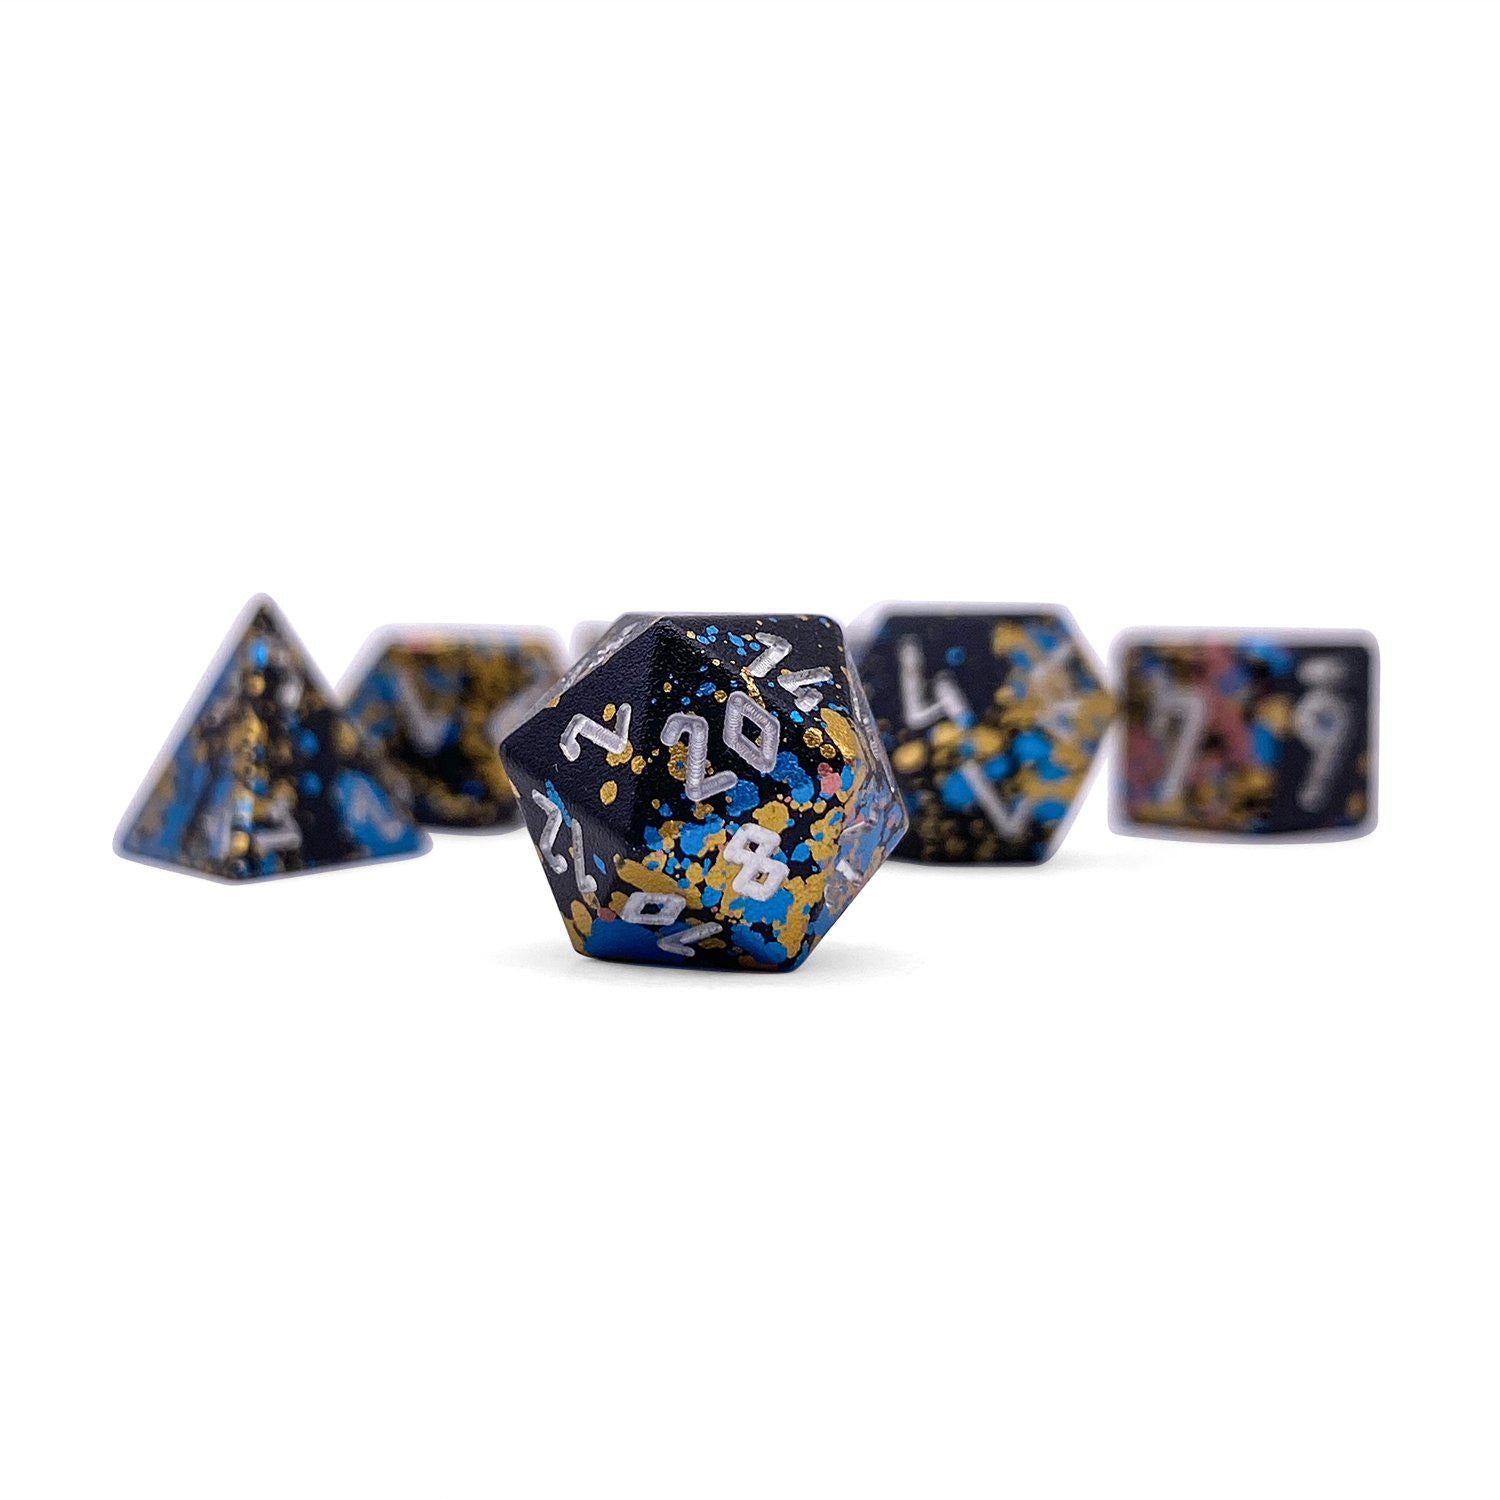 That 70s Die Wondrous Pebble ™ Dice - 10mm 6063 Aircraft Grade Aluminum Mini